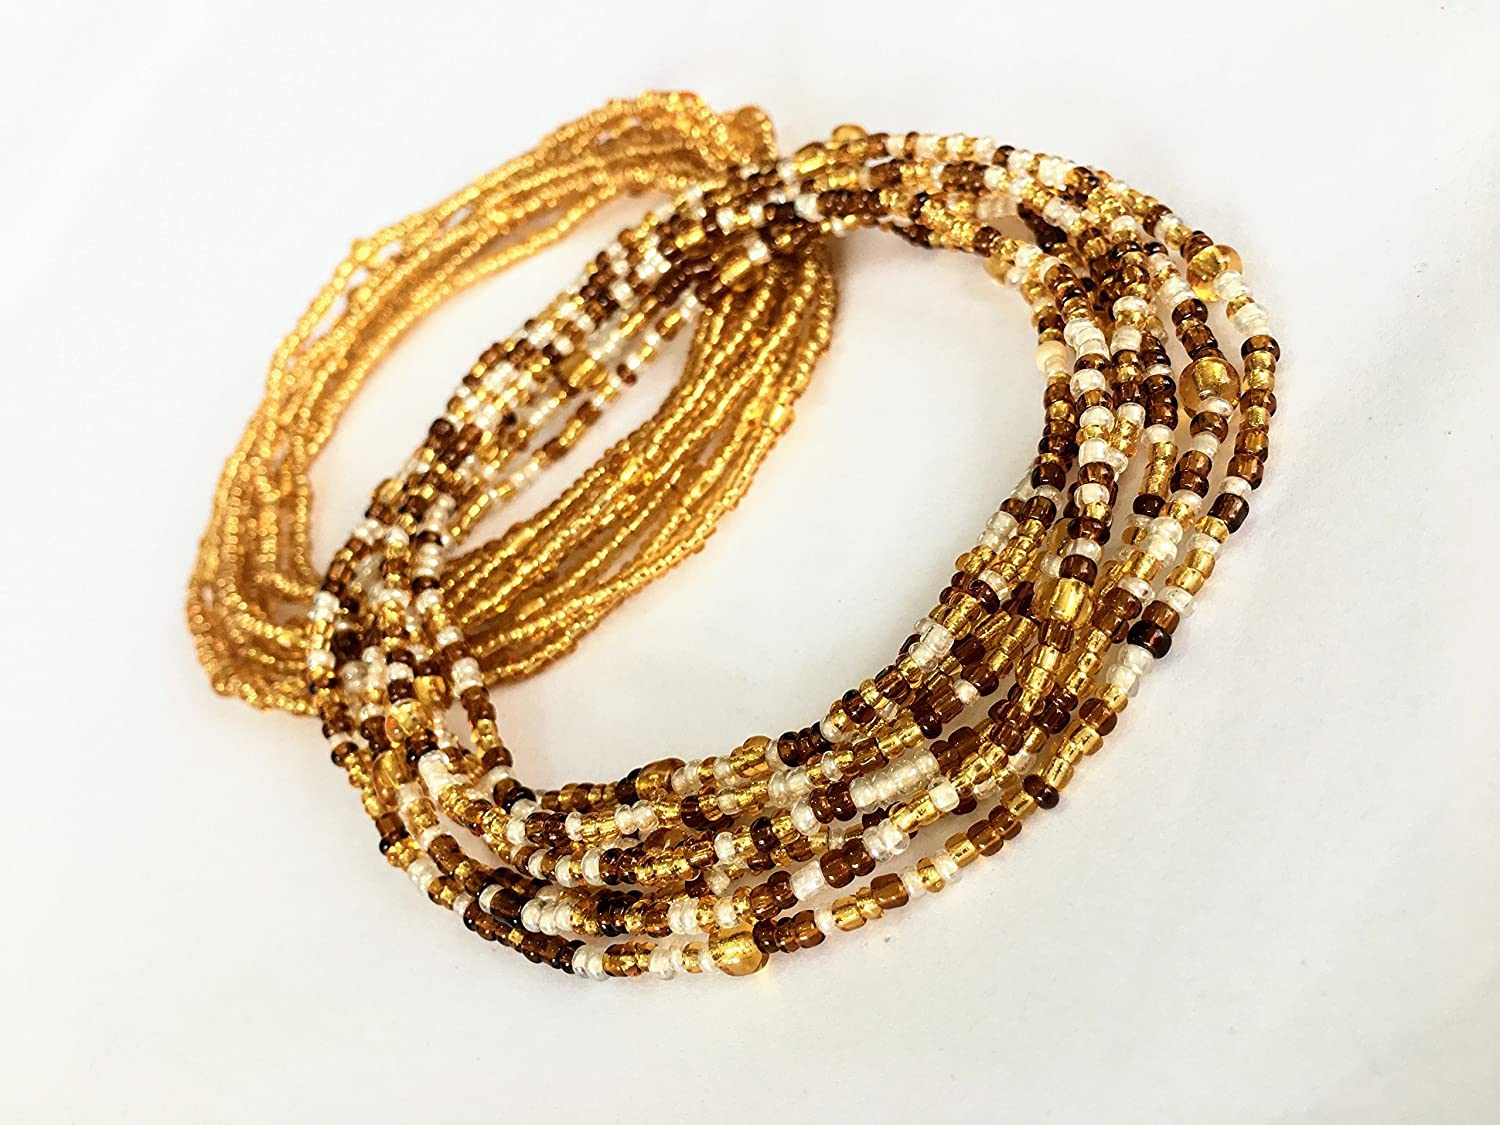 Stretchy Elastic String African Waist Beads Bracelet or Anklet 2 pcs Belly Bead Waist Beads Set Body Jewelry Wear as Necklace Waist chain Gold Brown and Cream Glass Seed Beads Belly Chain